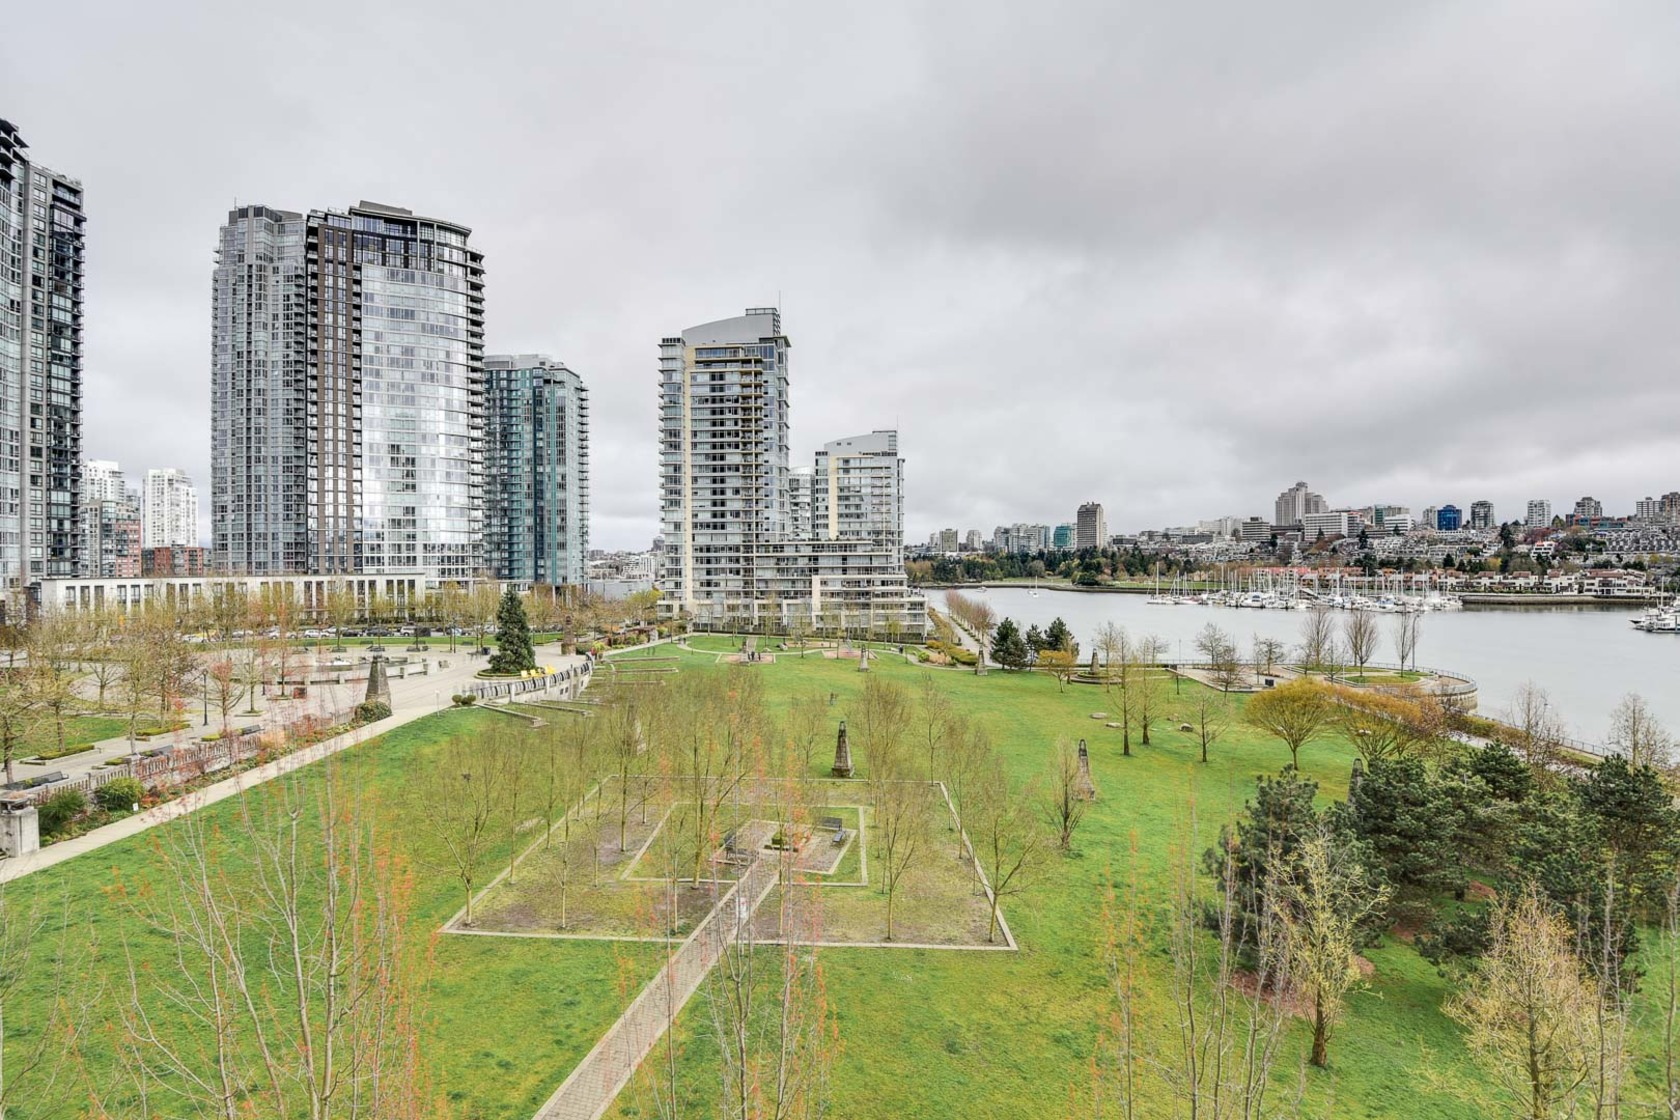 14-1-of-1 at 807 - 633 Kinghorne Mews, Beach Crescent (Yaletown), Vancouver West